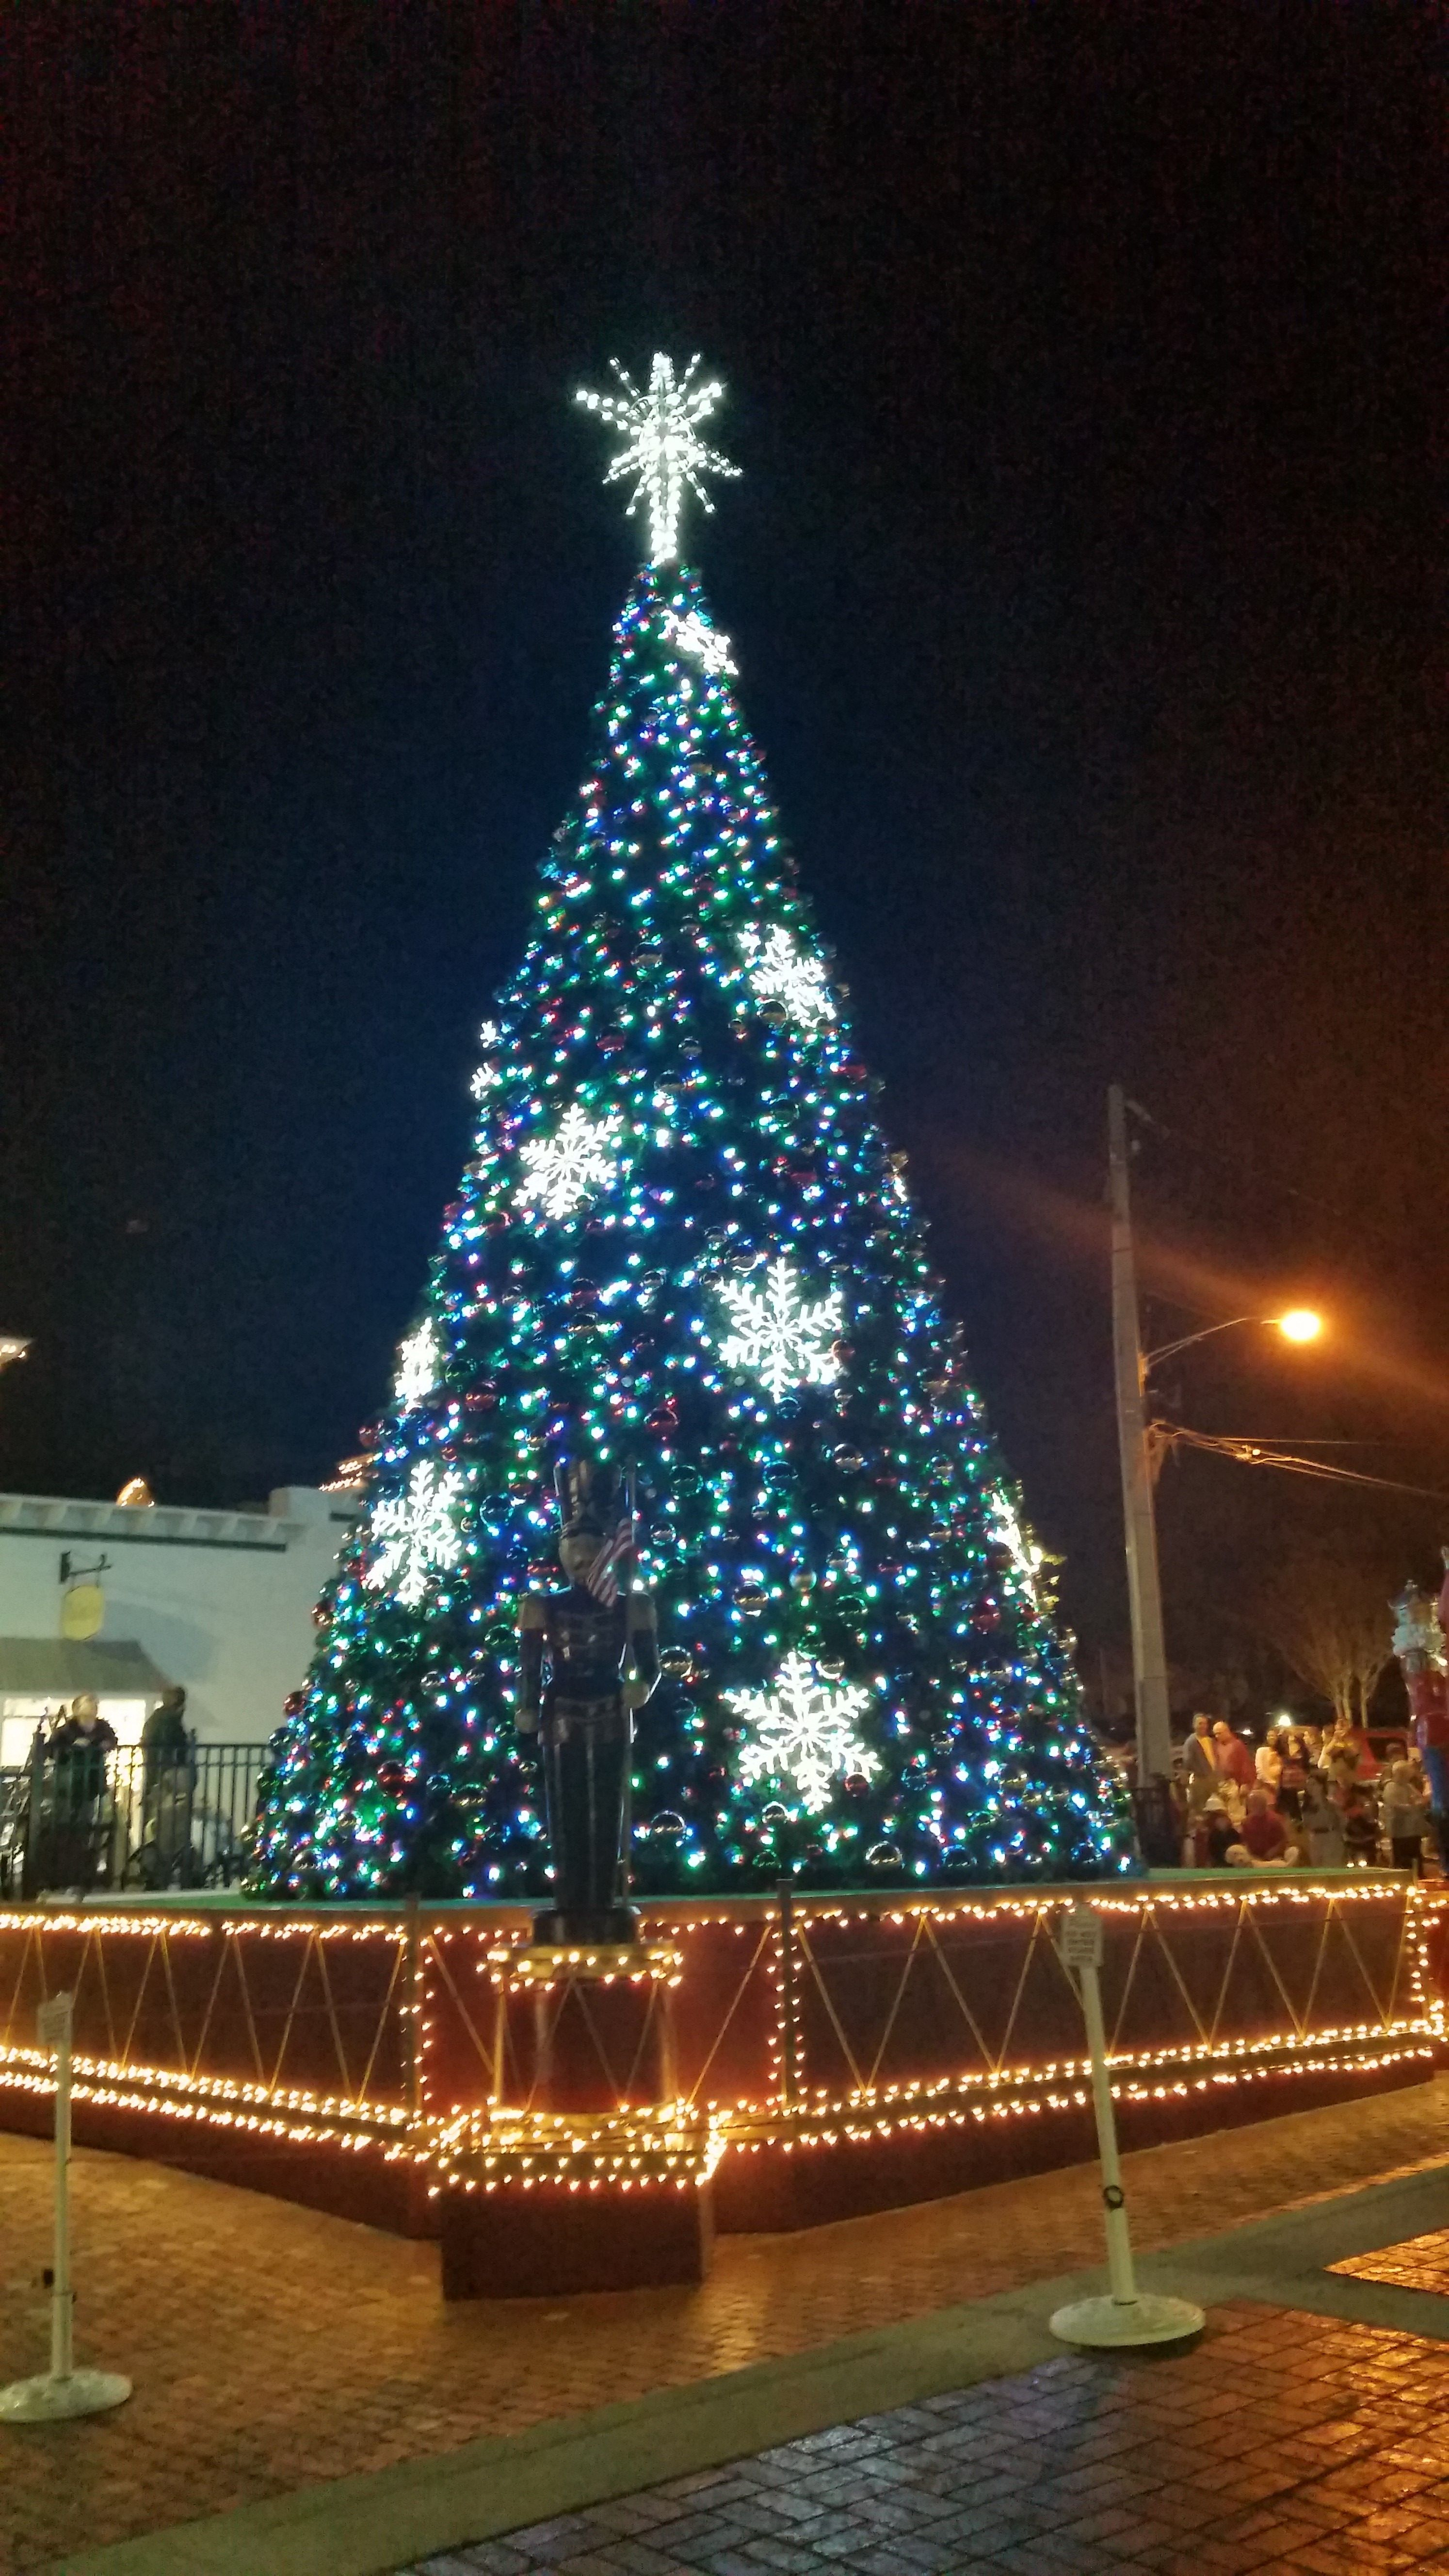 Mount Dora s tree located in the heart of the new pedestrian plaza